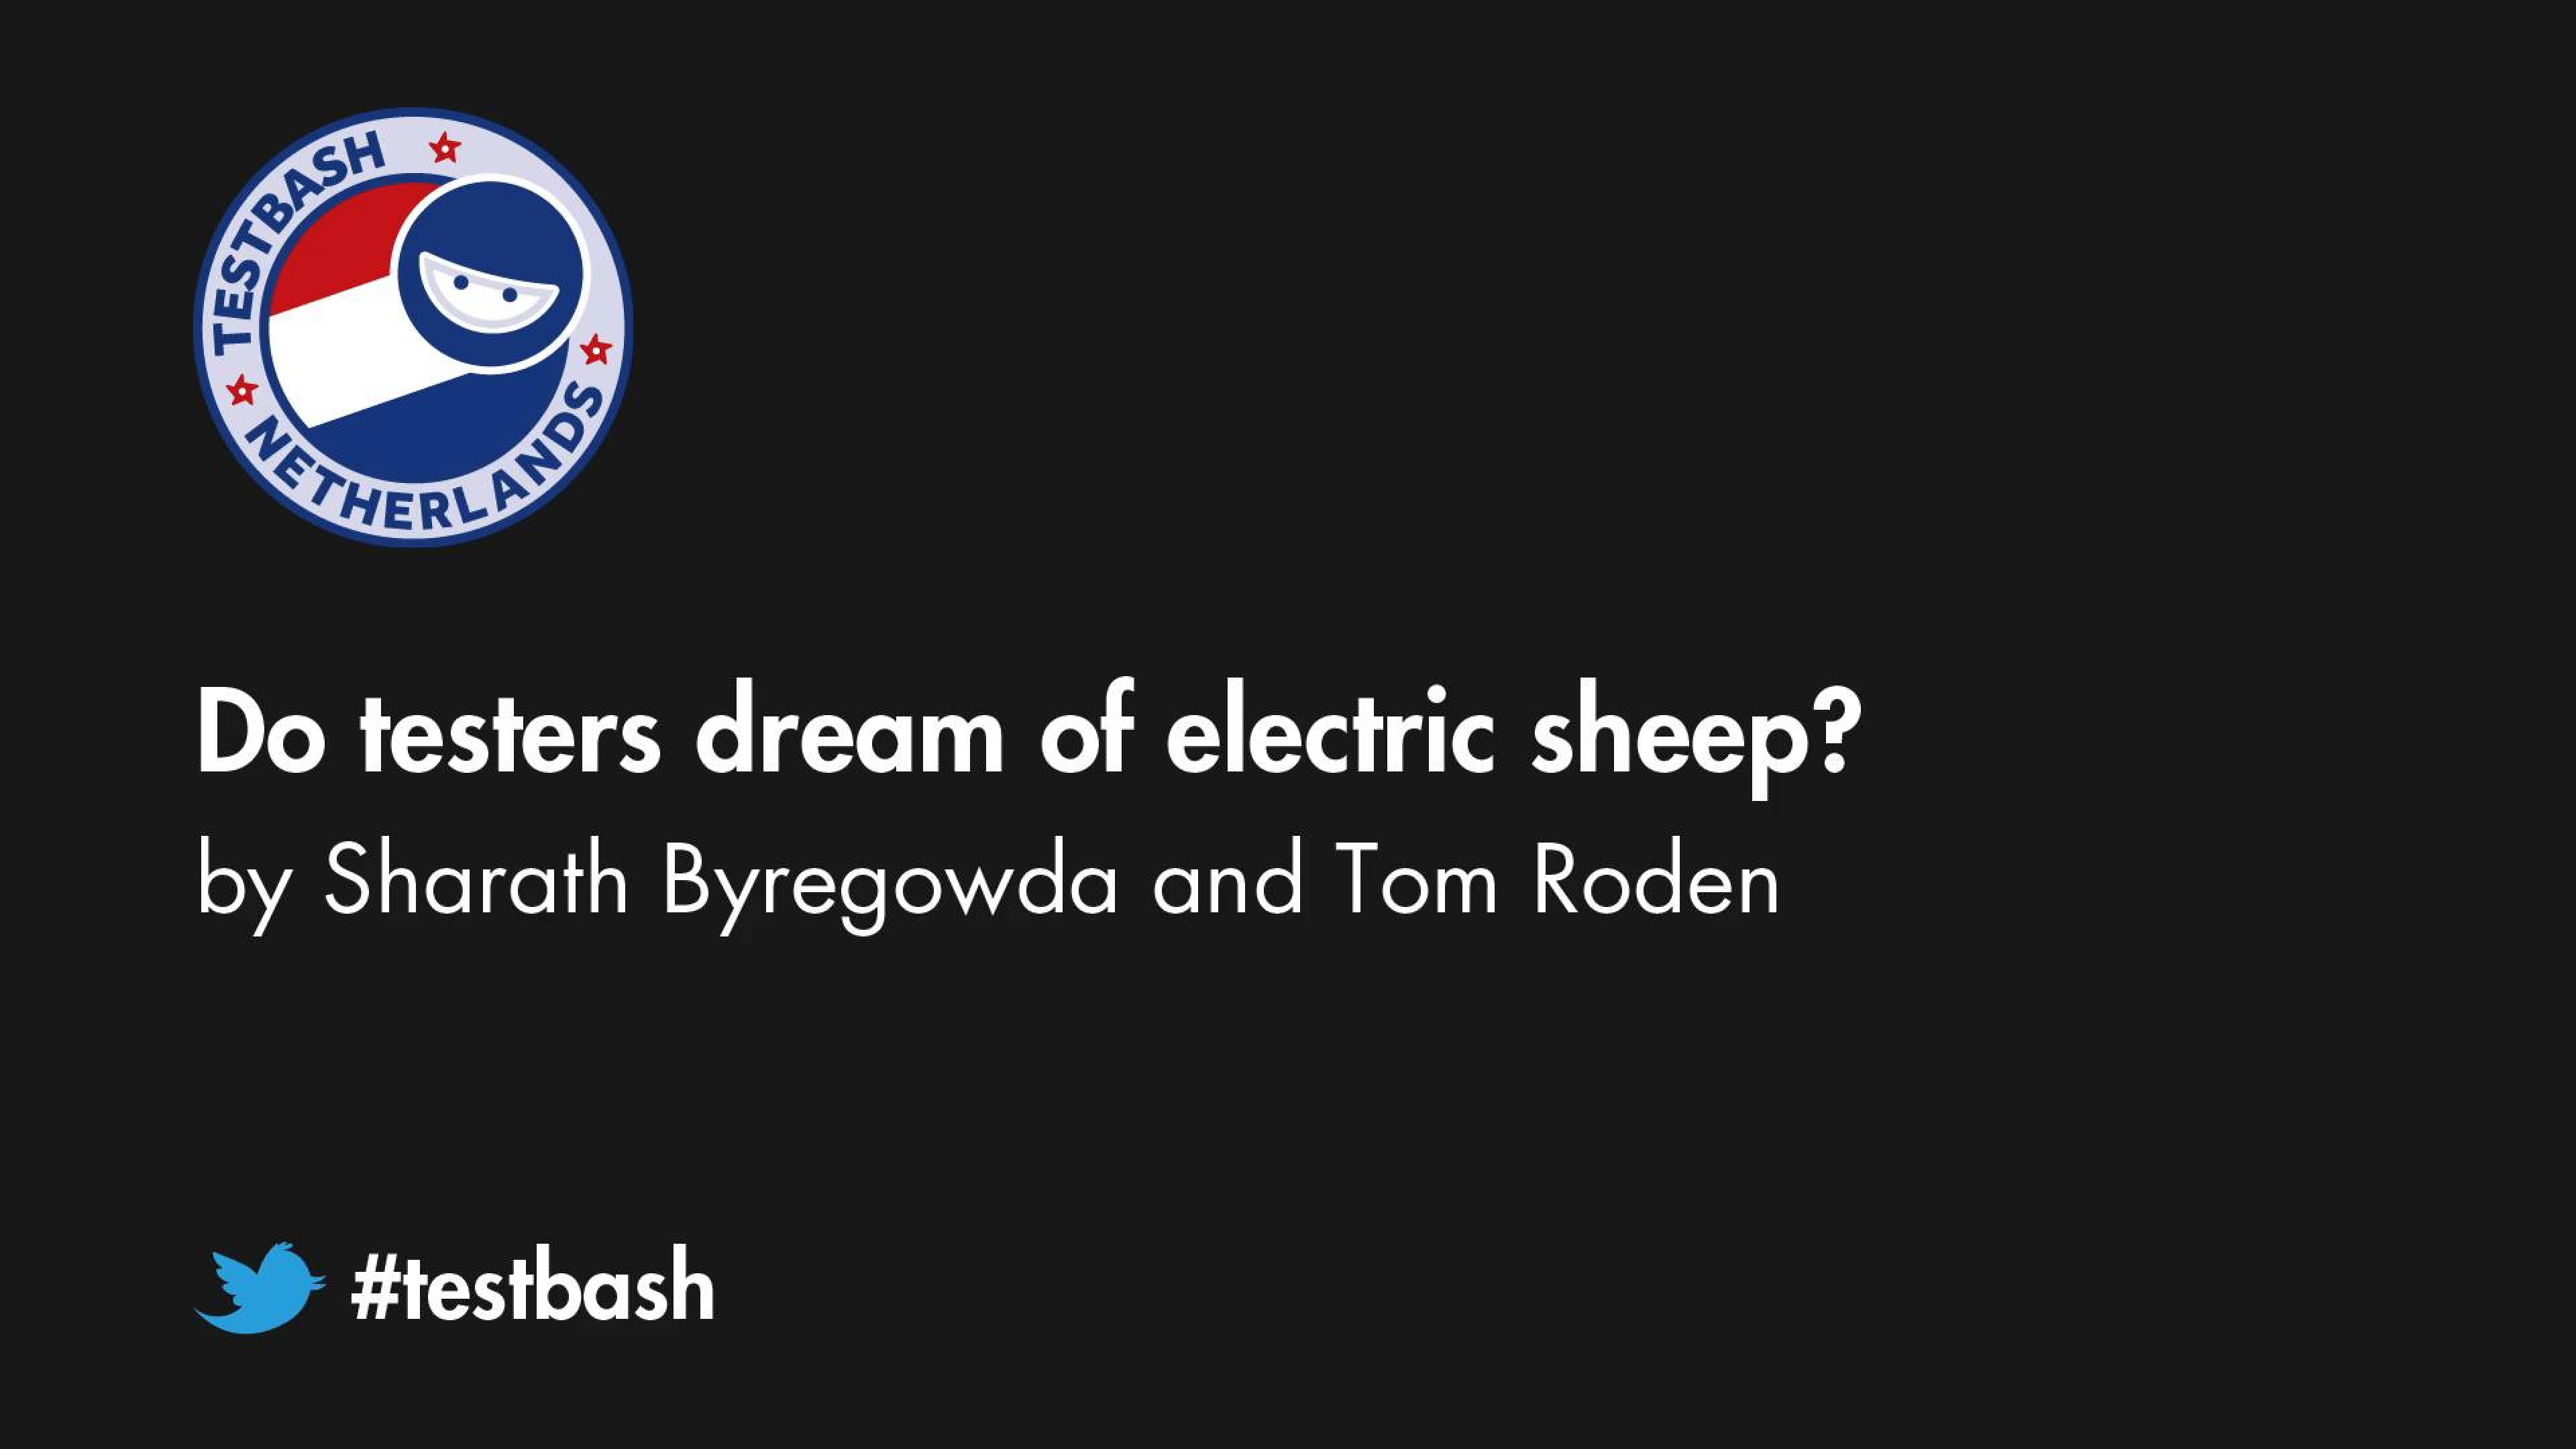 Do testers dream of electric sheep - Sharath Byregowda / Tom Roden